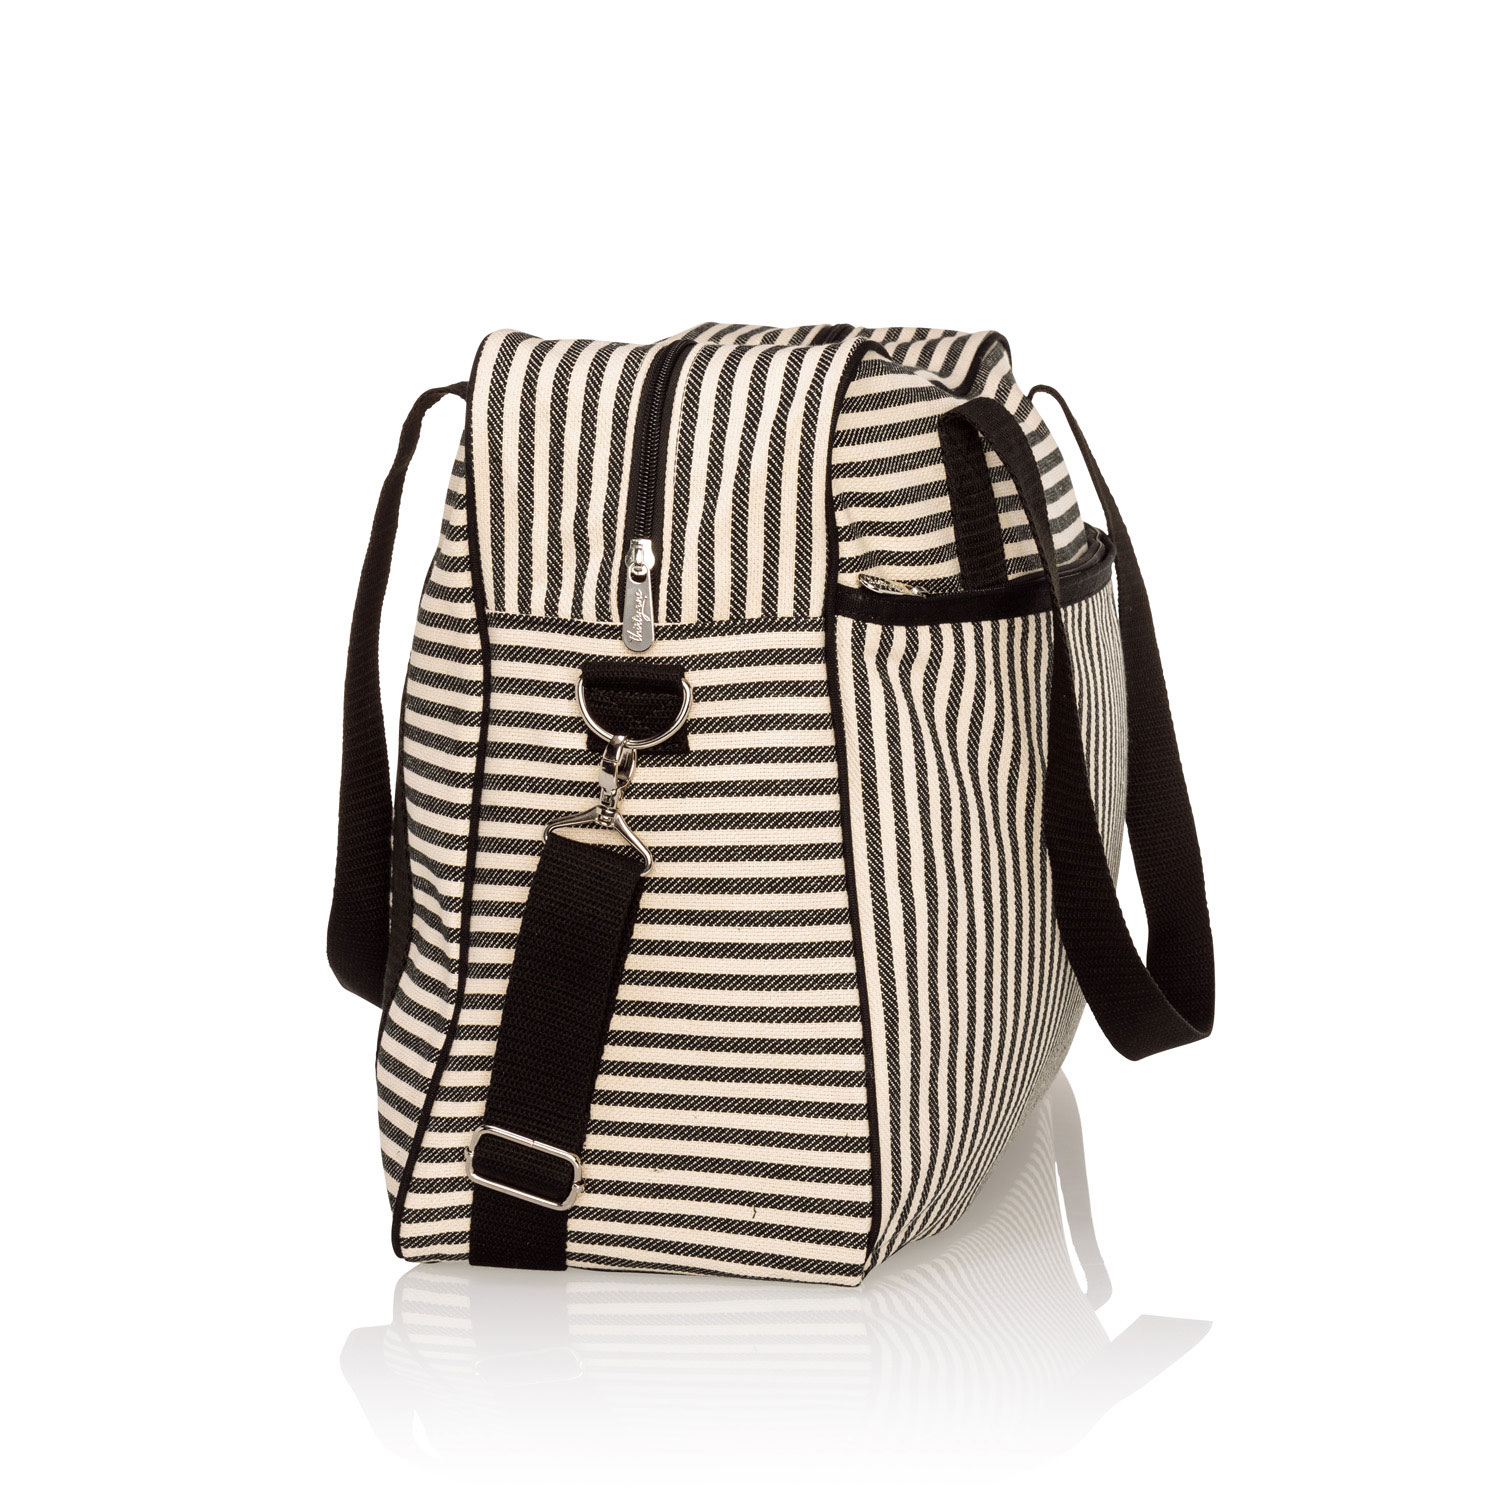 2a0519b36 Twill Stripe - Away For The Weekender - Thirty-One Gifts - Affordable  Purses, Totes & Bags